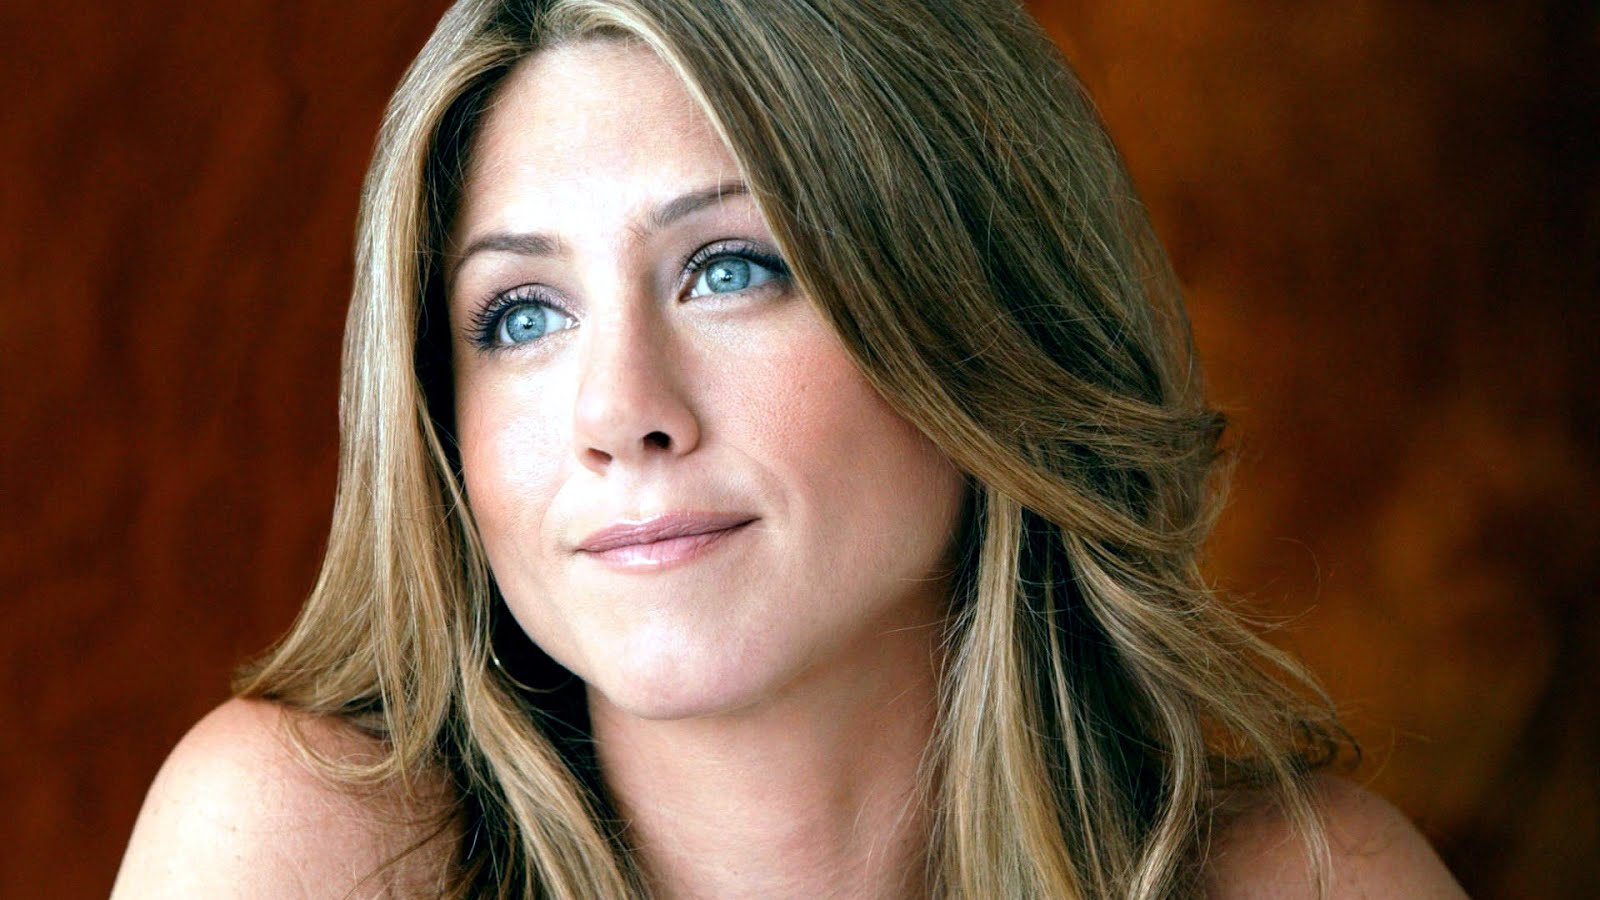 JENNIFER ANISTON: UNLUCKY IN LOVE?